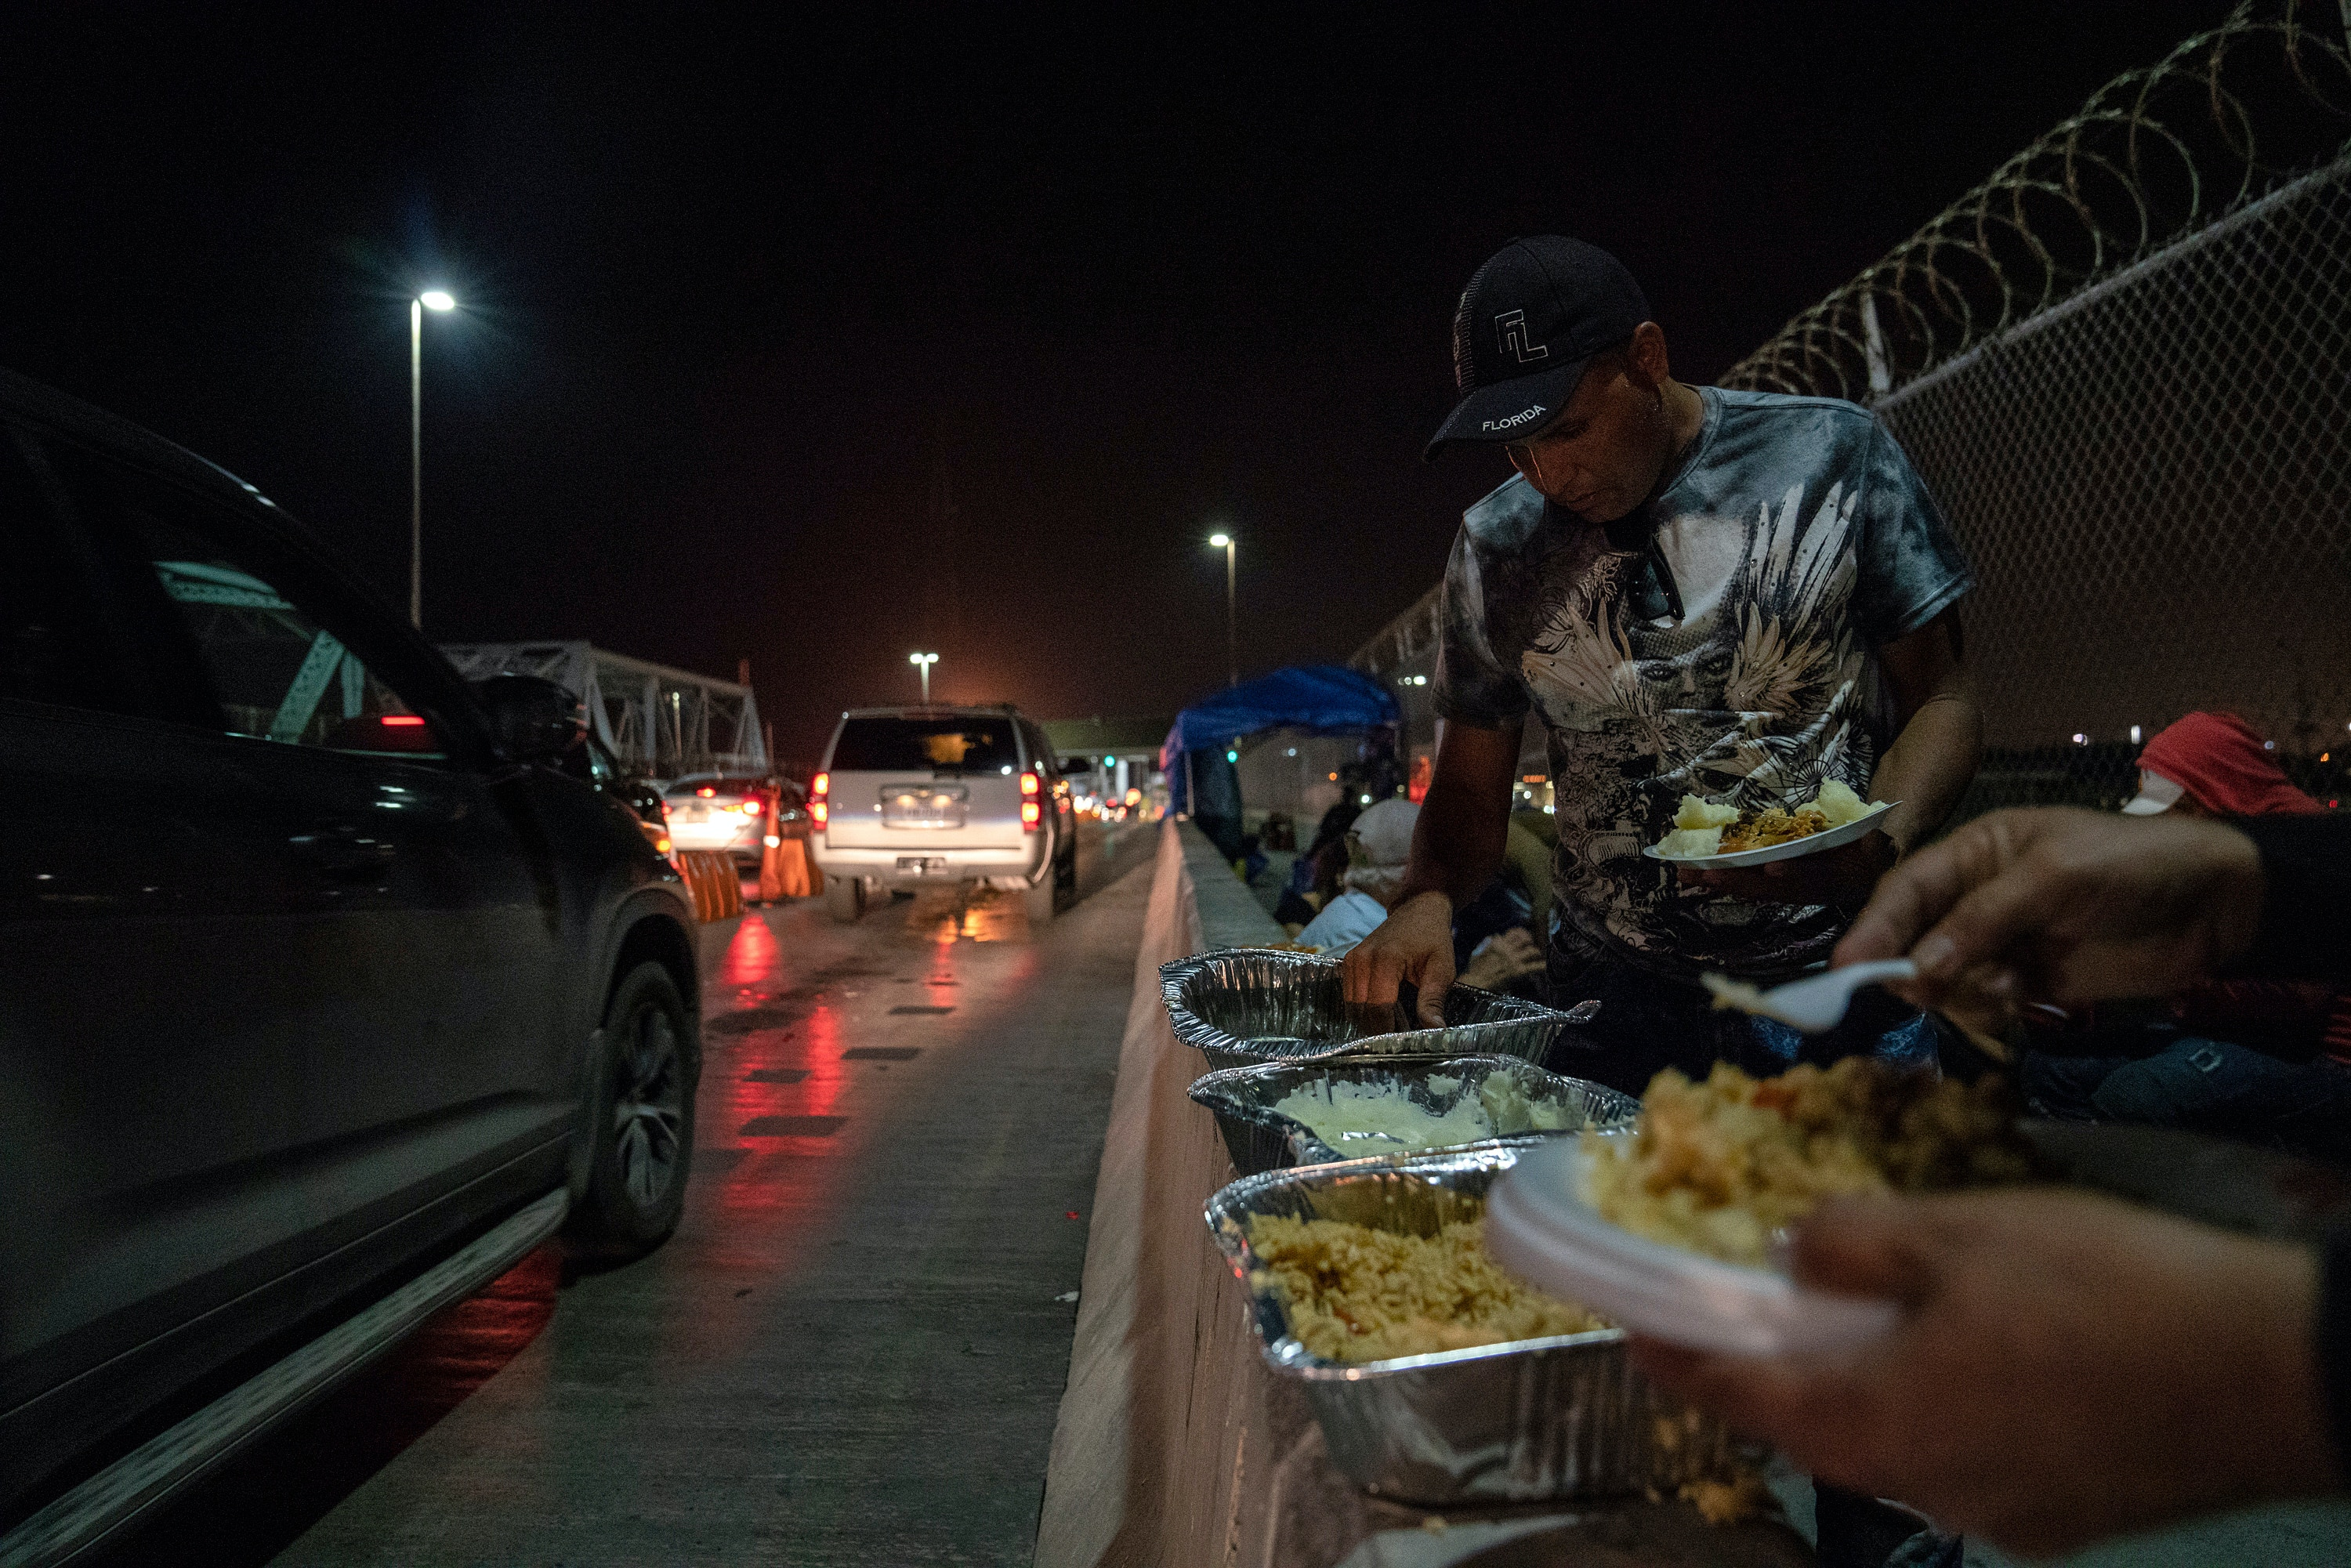 Asylum seekers gather to eat the food brought to them by volunteers at the Brownsville-Matamoros International Bridge in Matamoros, Tamaulipas on Nov. 5, 2018.  Photo: Verónica G. Cárdenas for The Intercept